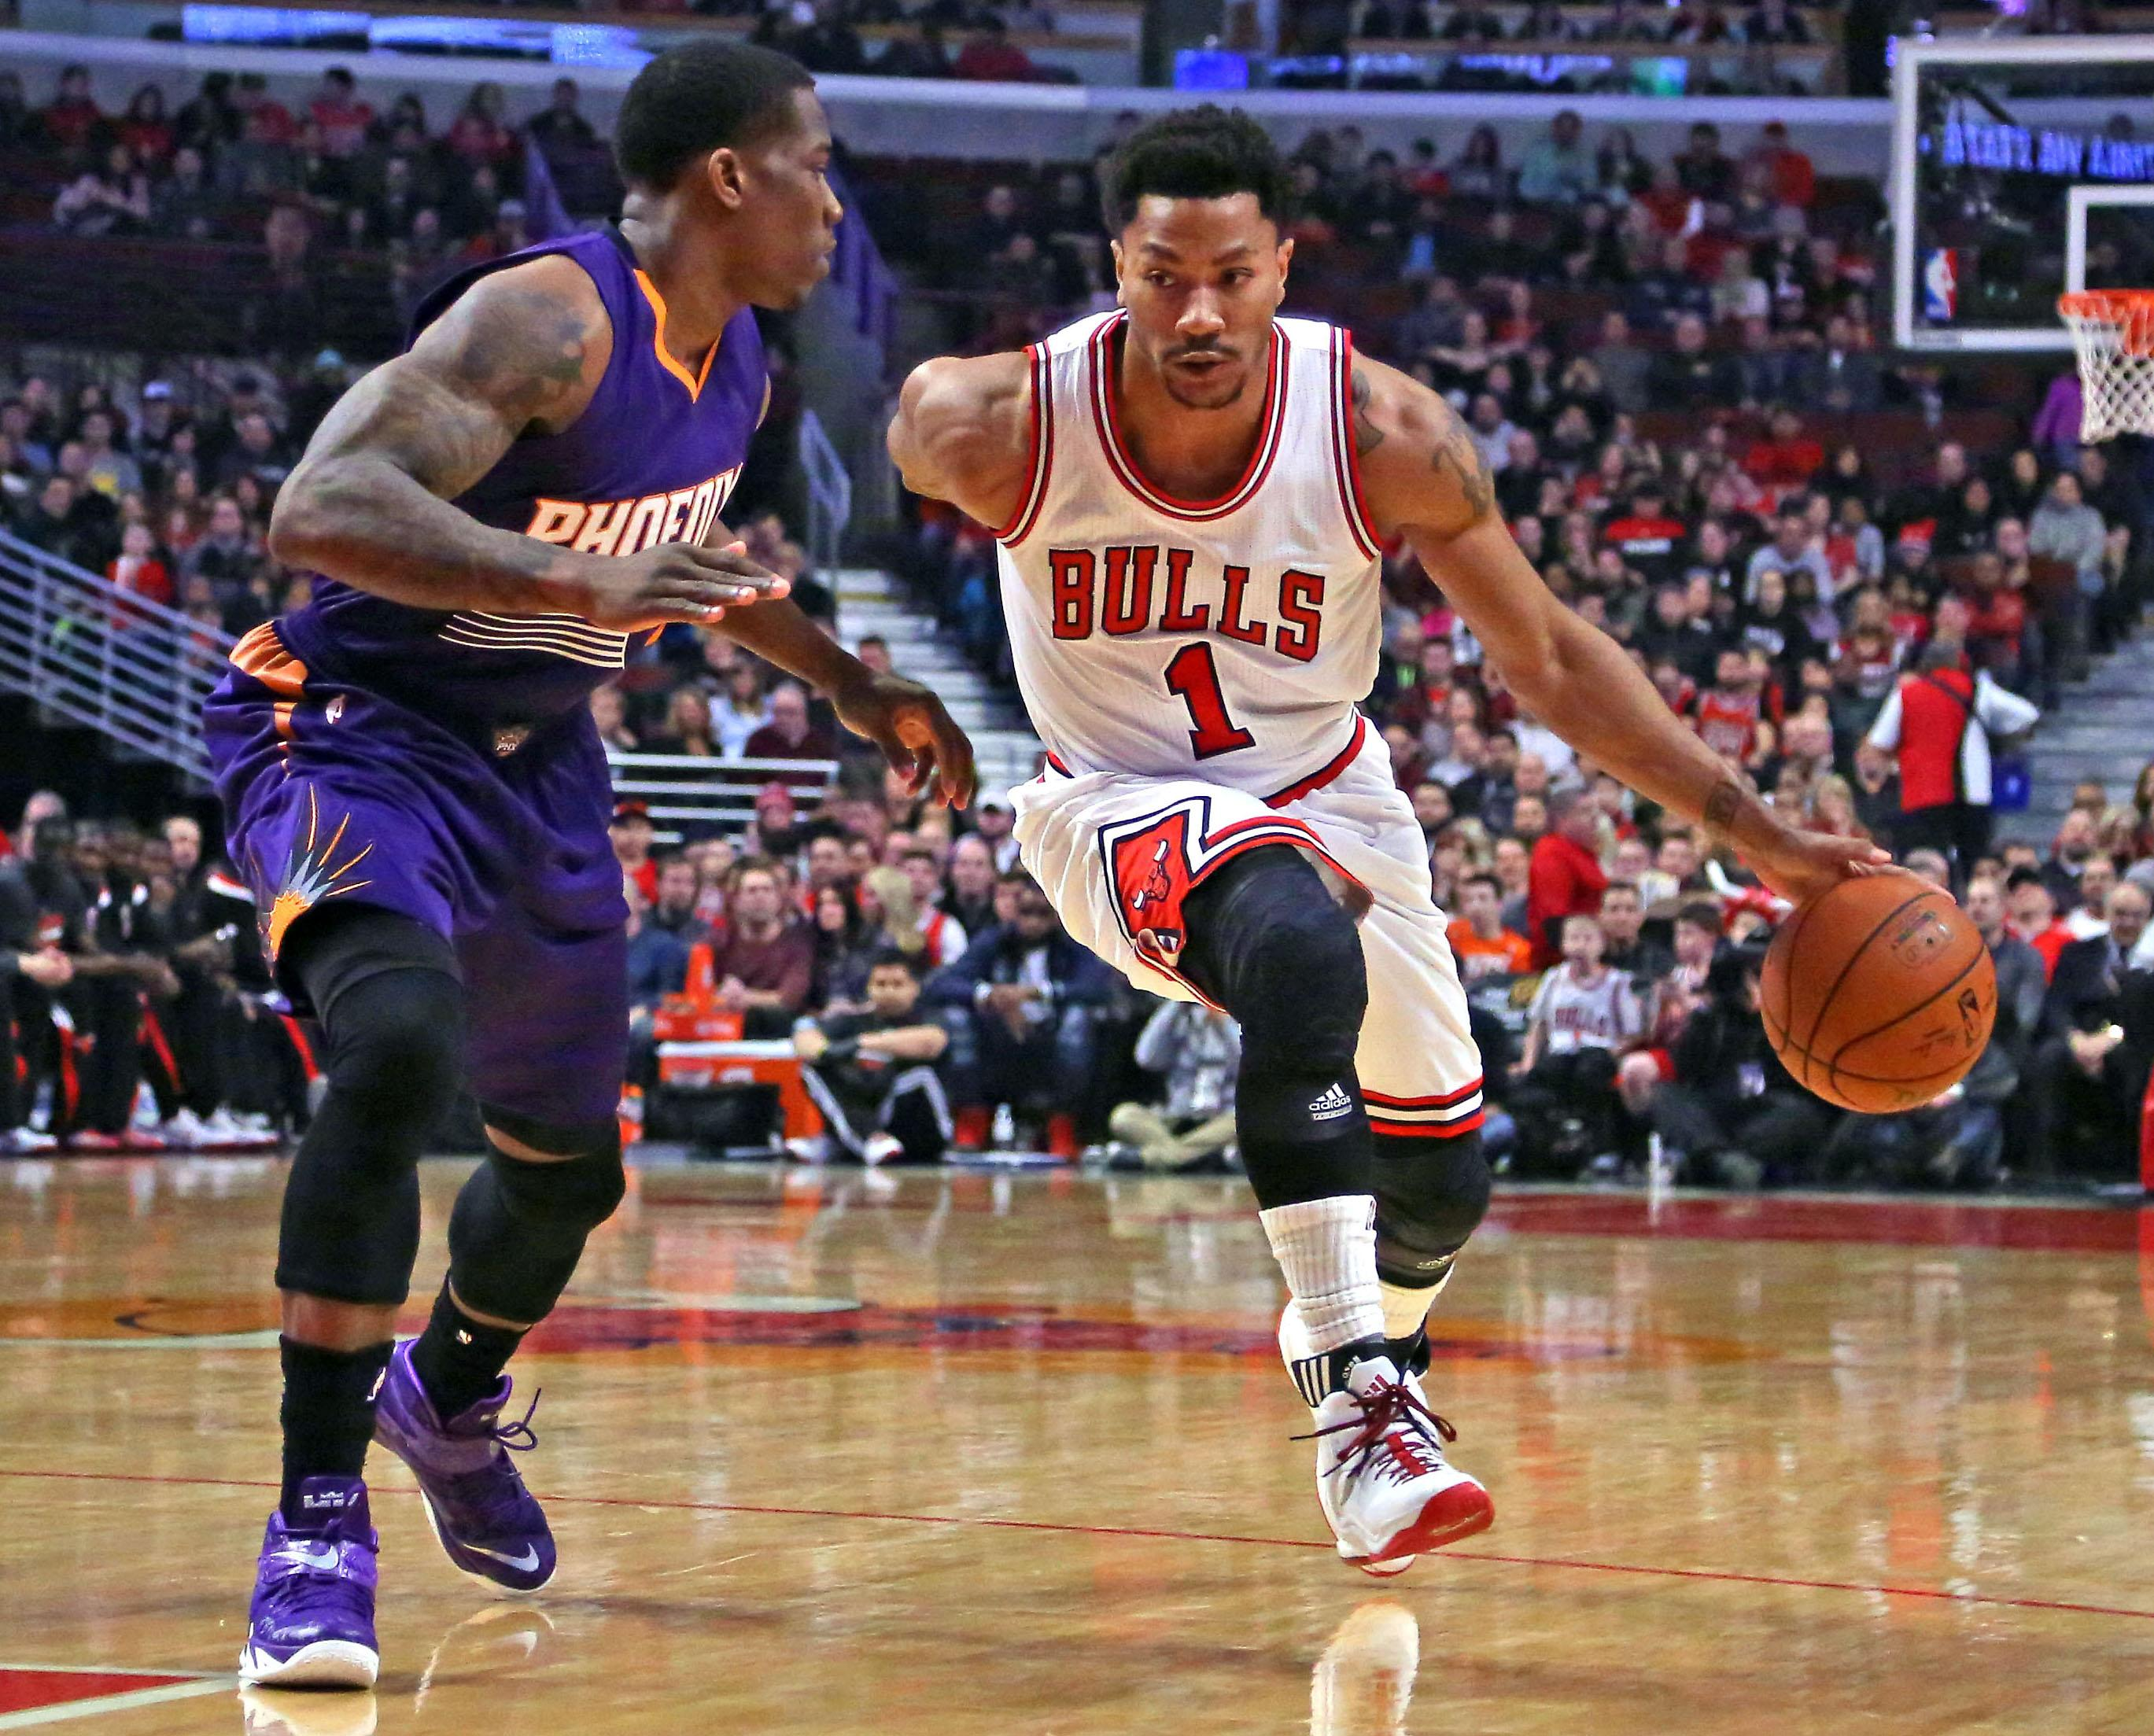 The 10-man rotation, starring Derrick Rose and what we're all missing again